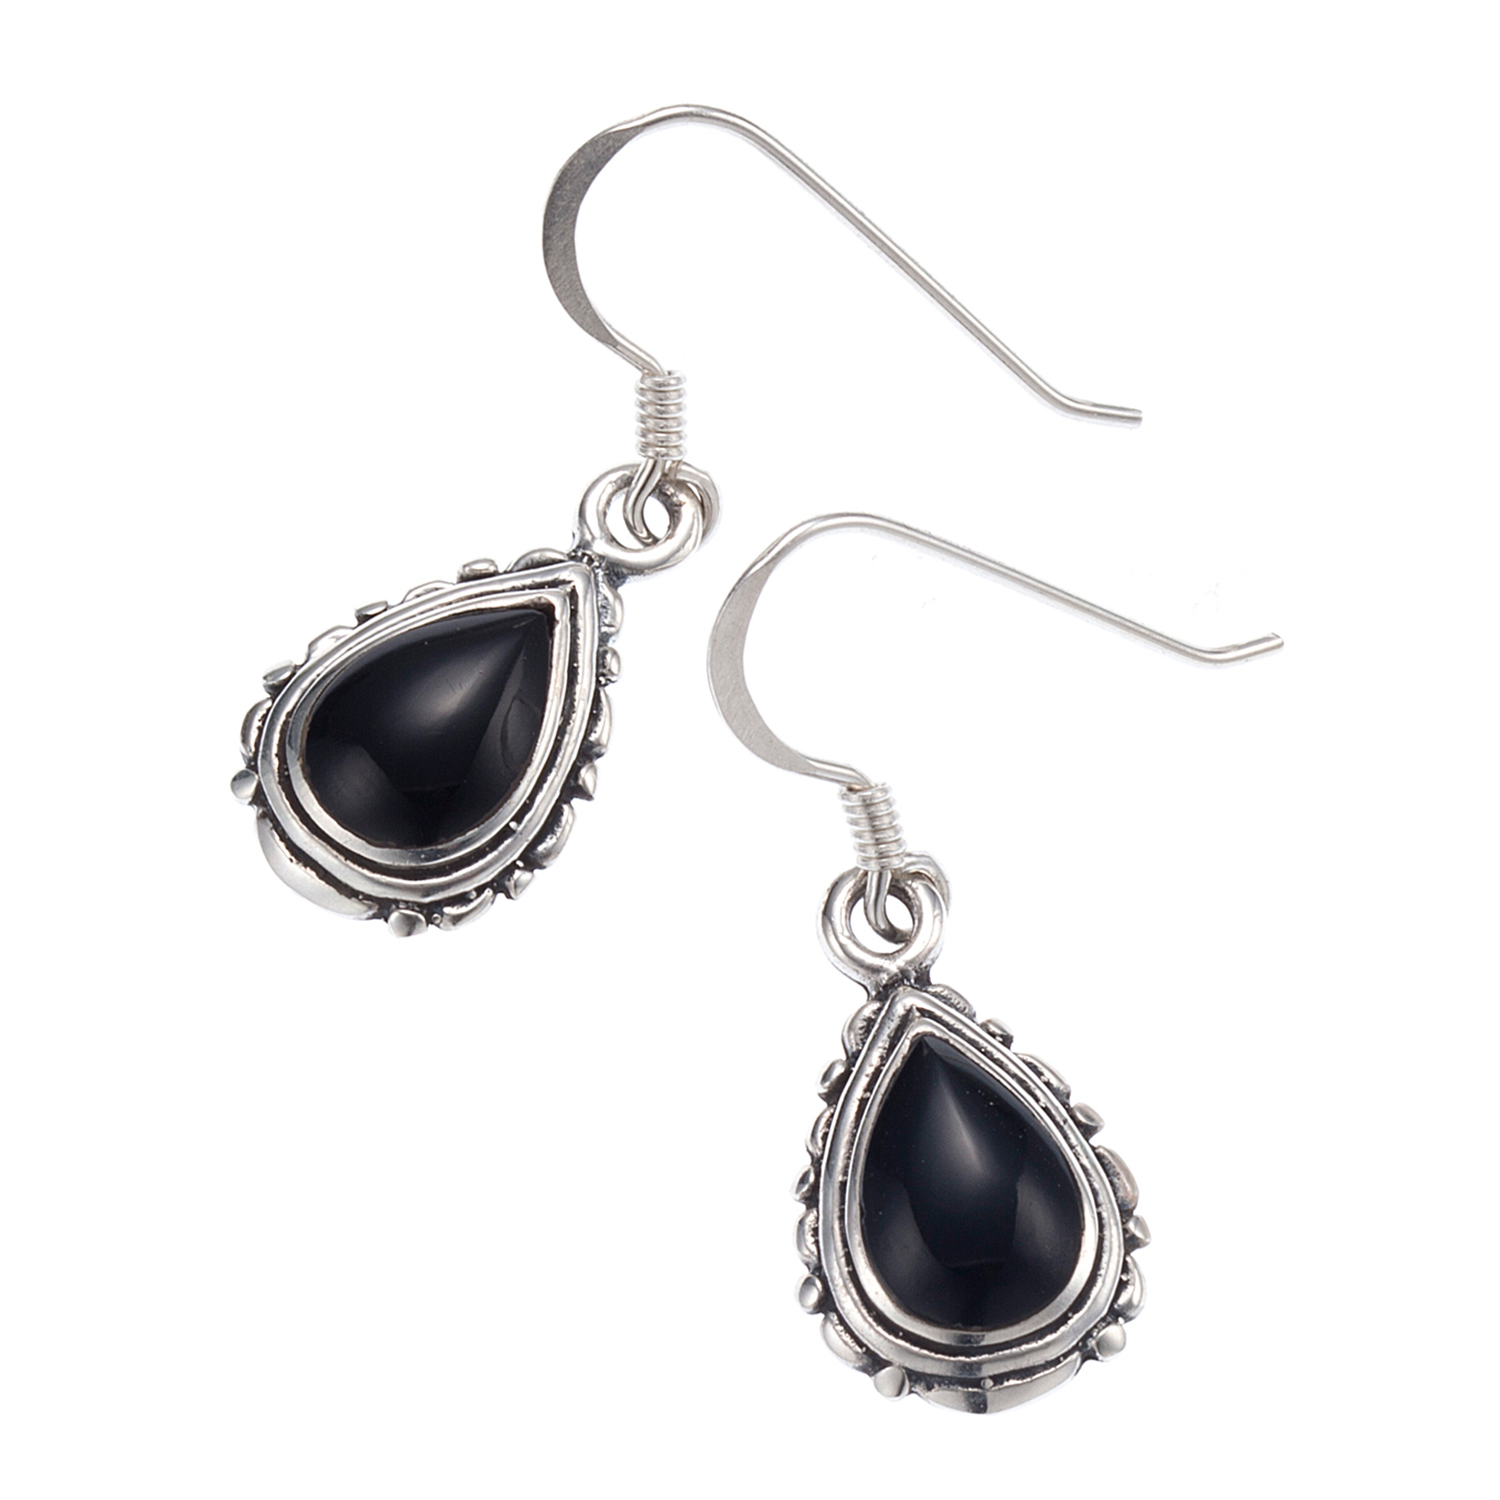 925 Oxidized Sterling Silver Black Onyx Gemstones Tear Drop Dangle Earrings - Nickel Free